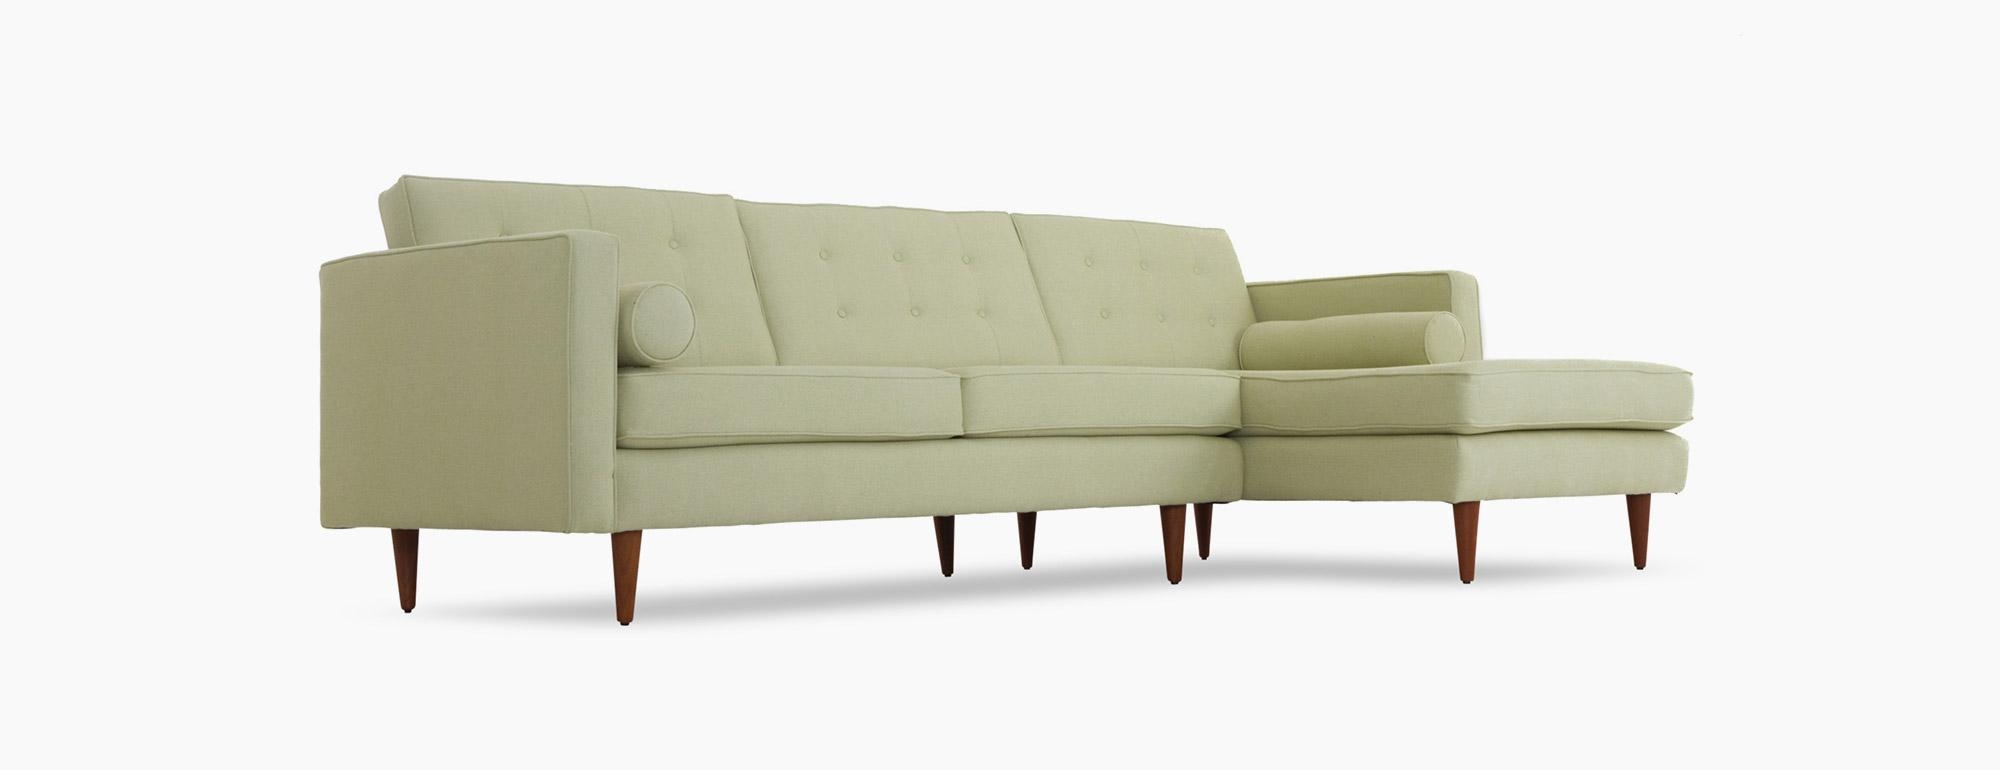 Braxton Sectional | Joybird In Braxton Sectional Sofa (Image 4 of 15)